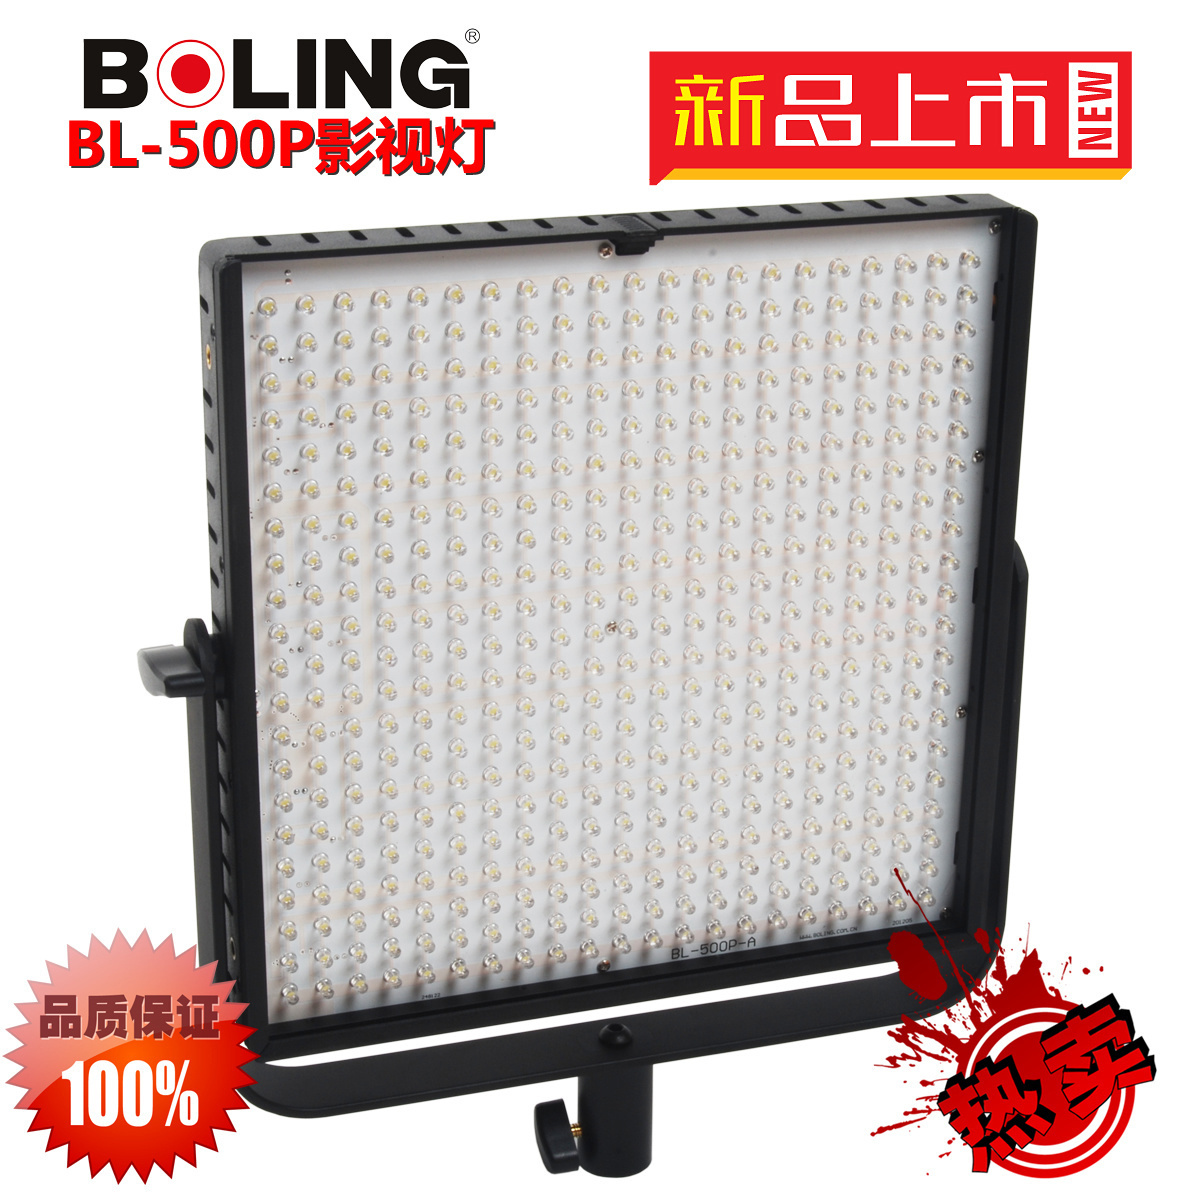 wholesale Photographic equipment boling bl-500p flat panel television lights led video light lamp photography light(China (Mainland))